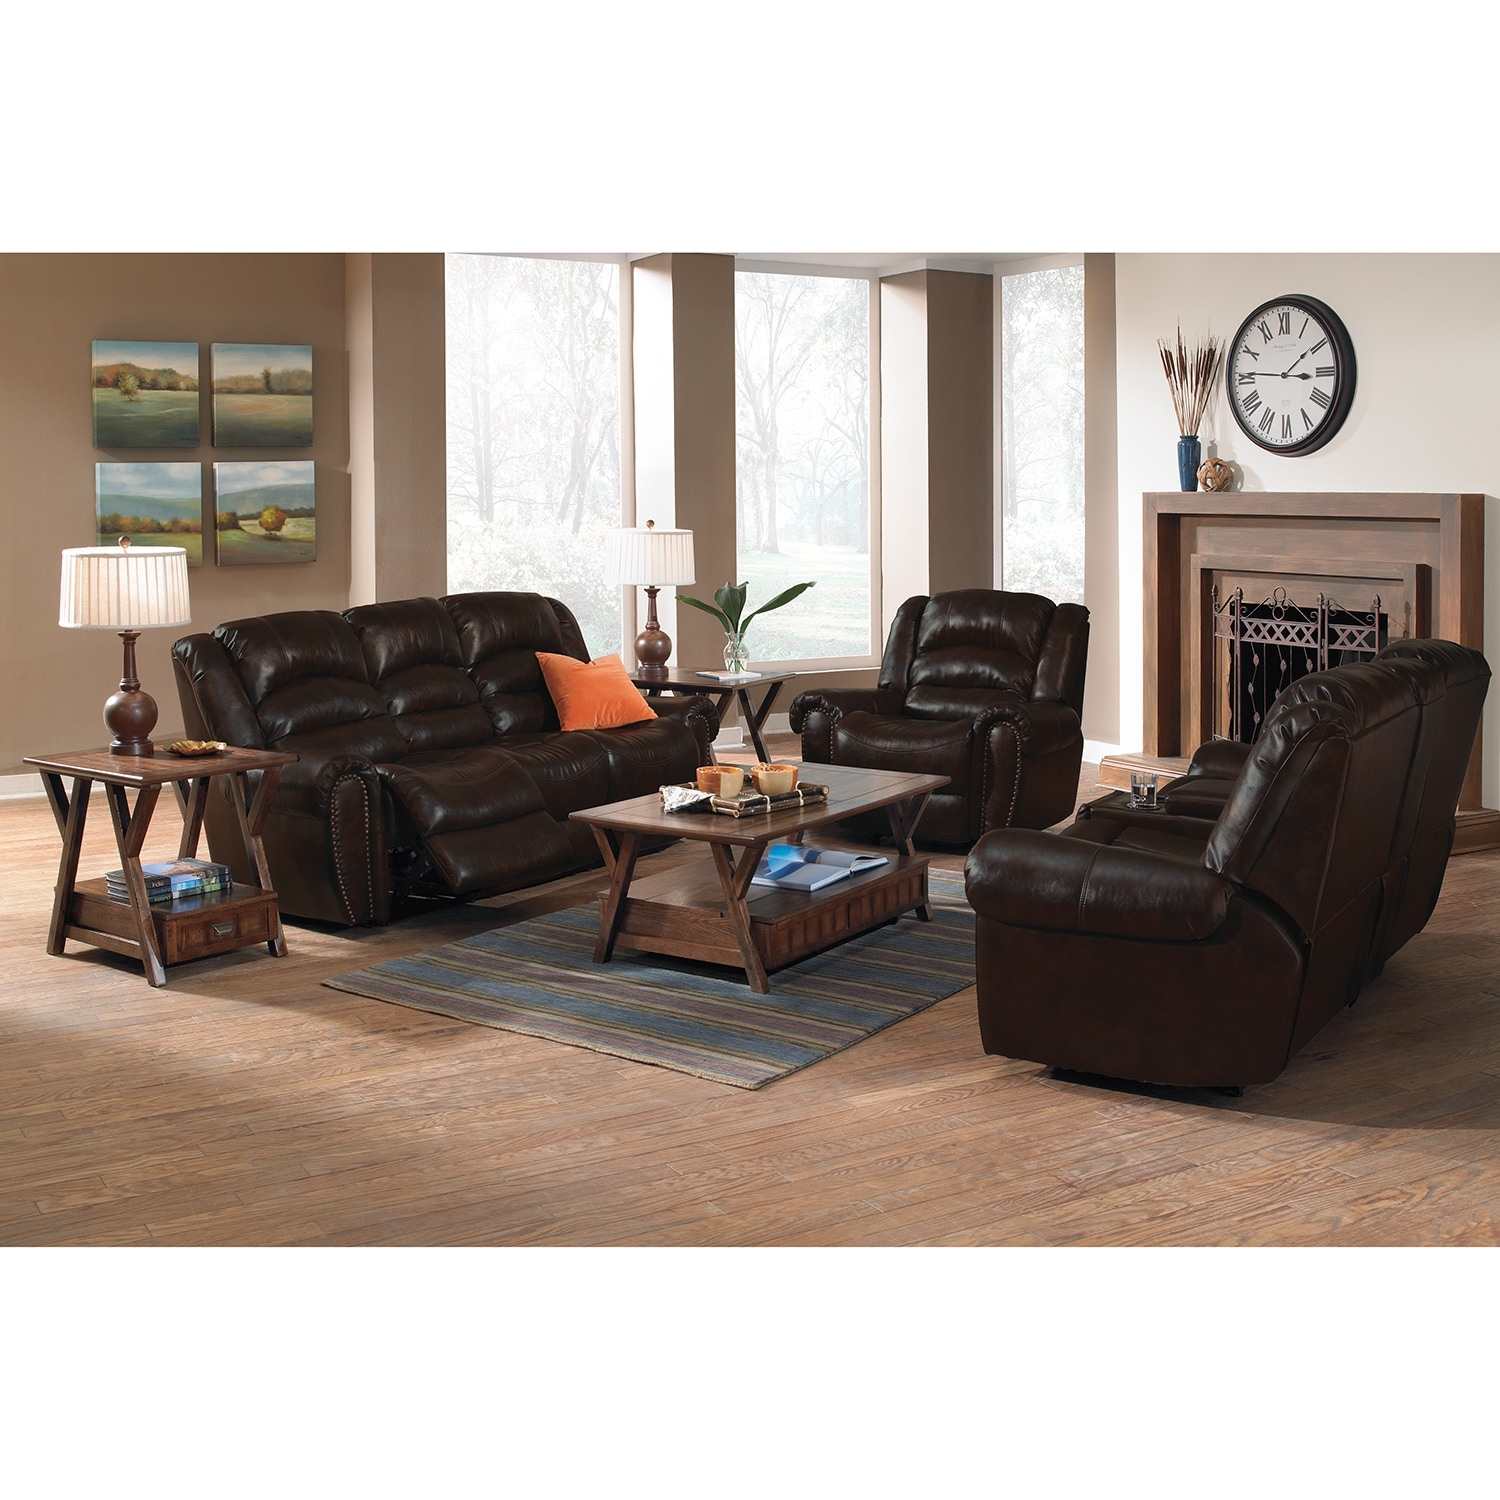 Living Room Furniture Packages